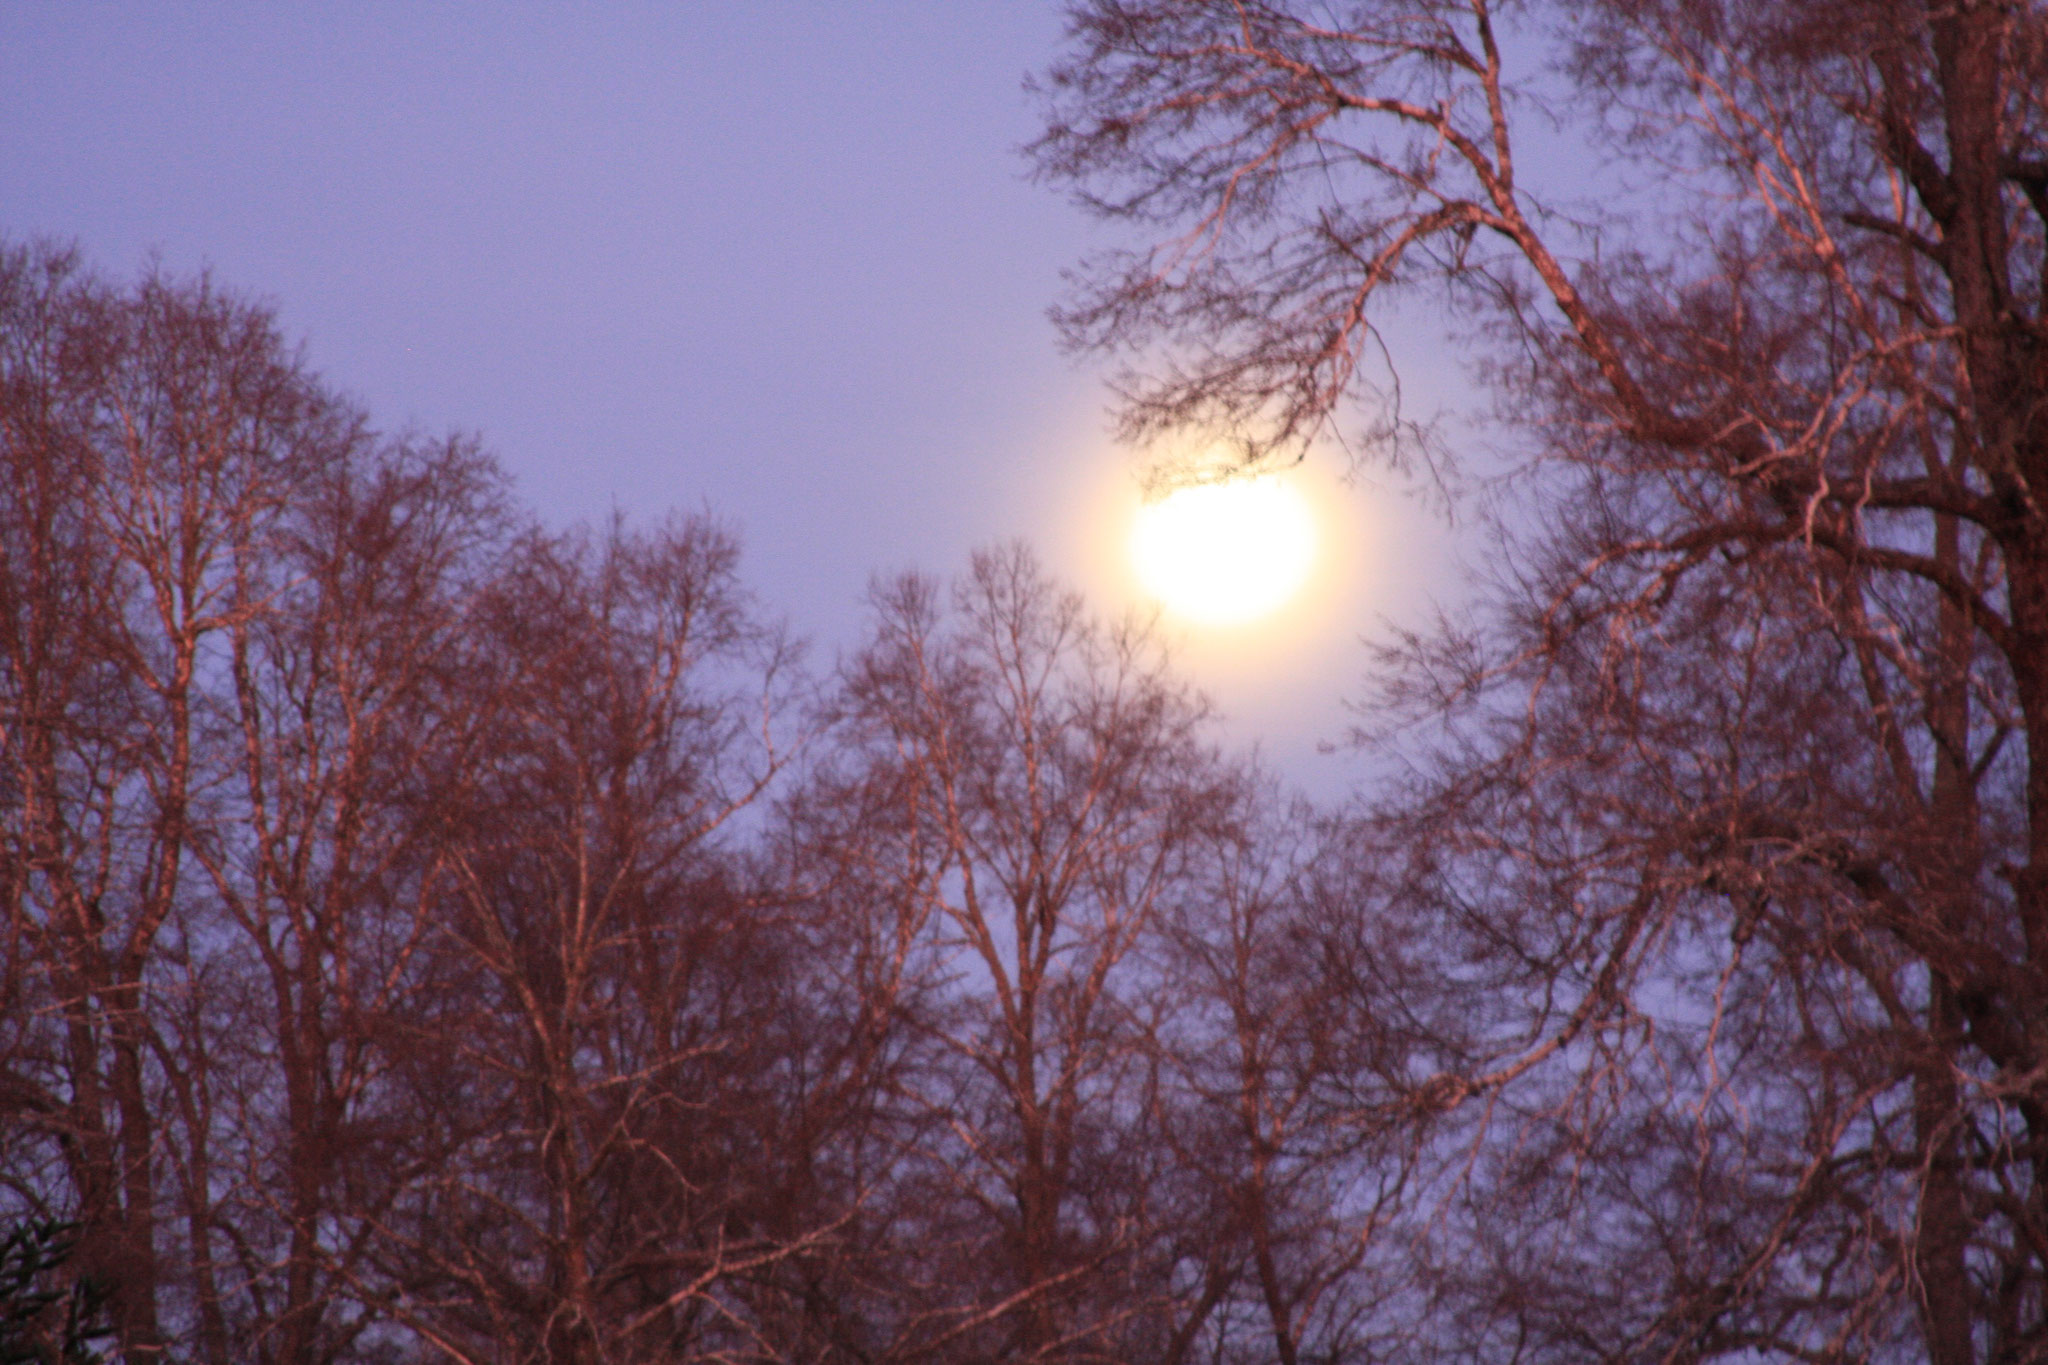 Full moon in winter time